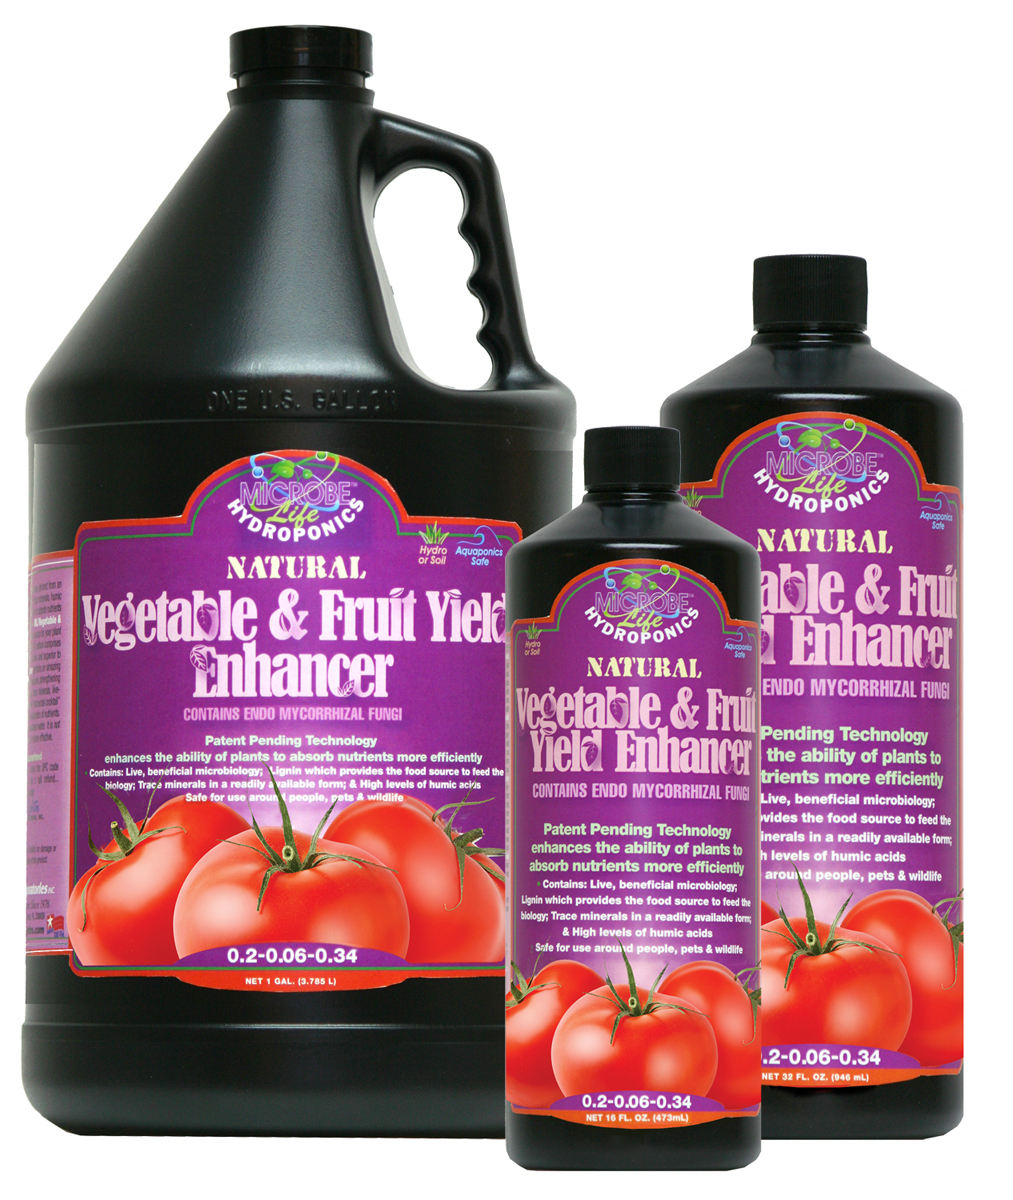 Microbe Life Vegetable & Fruit Yield Enhancer 1 Quart